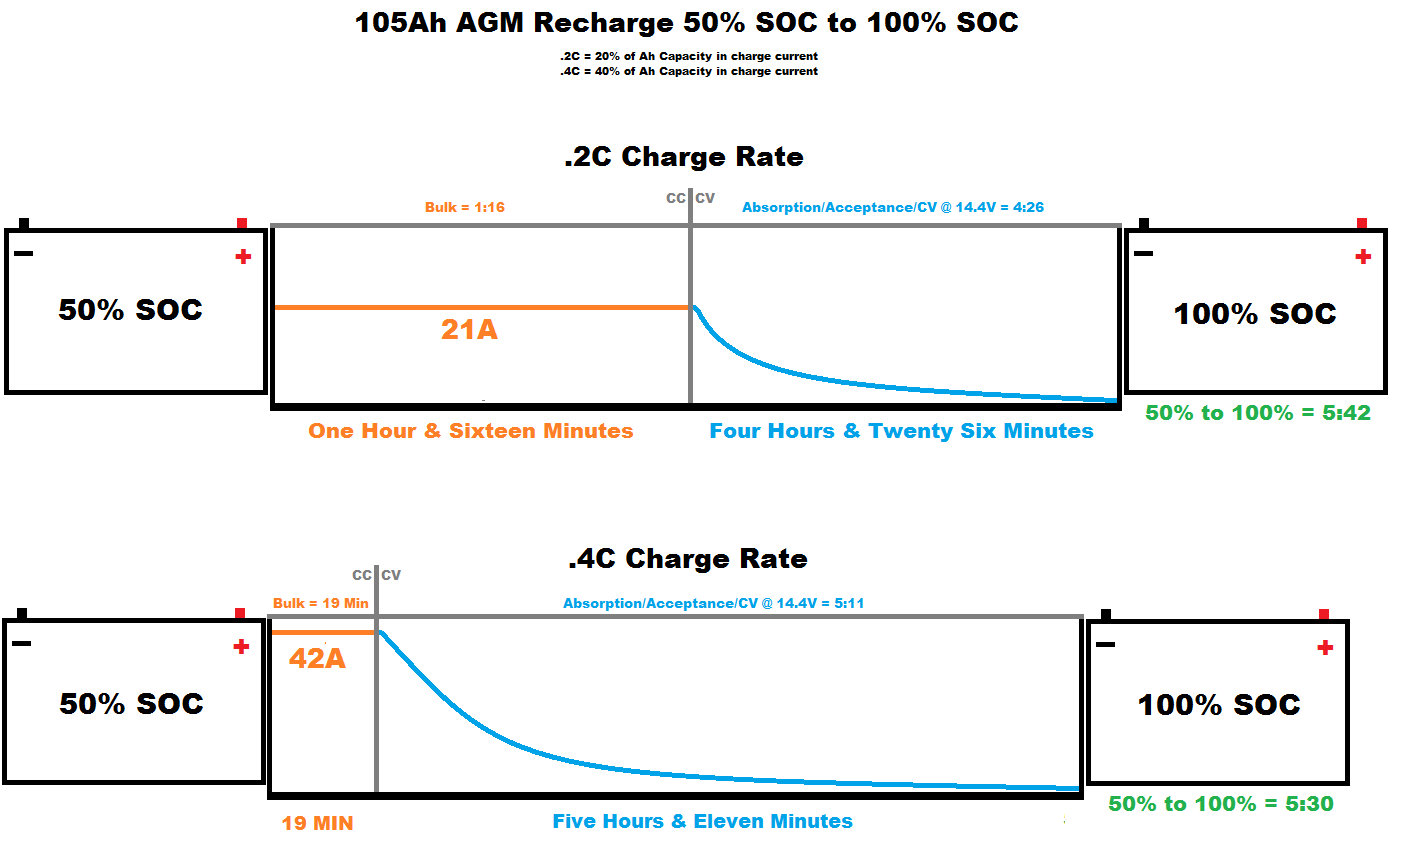 How Fast Can An Agm Battery Be Charged Marine To Alternator Wiring Diagram The Difference Between 2c And 4c From 50 Soc 100